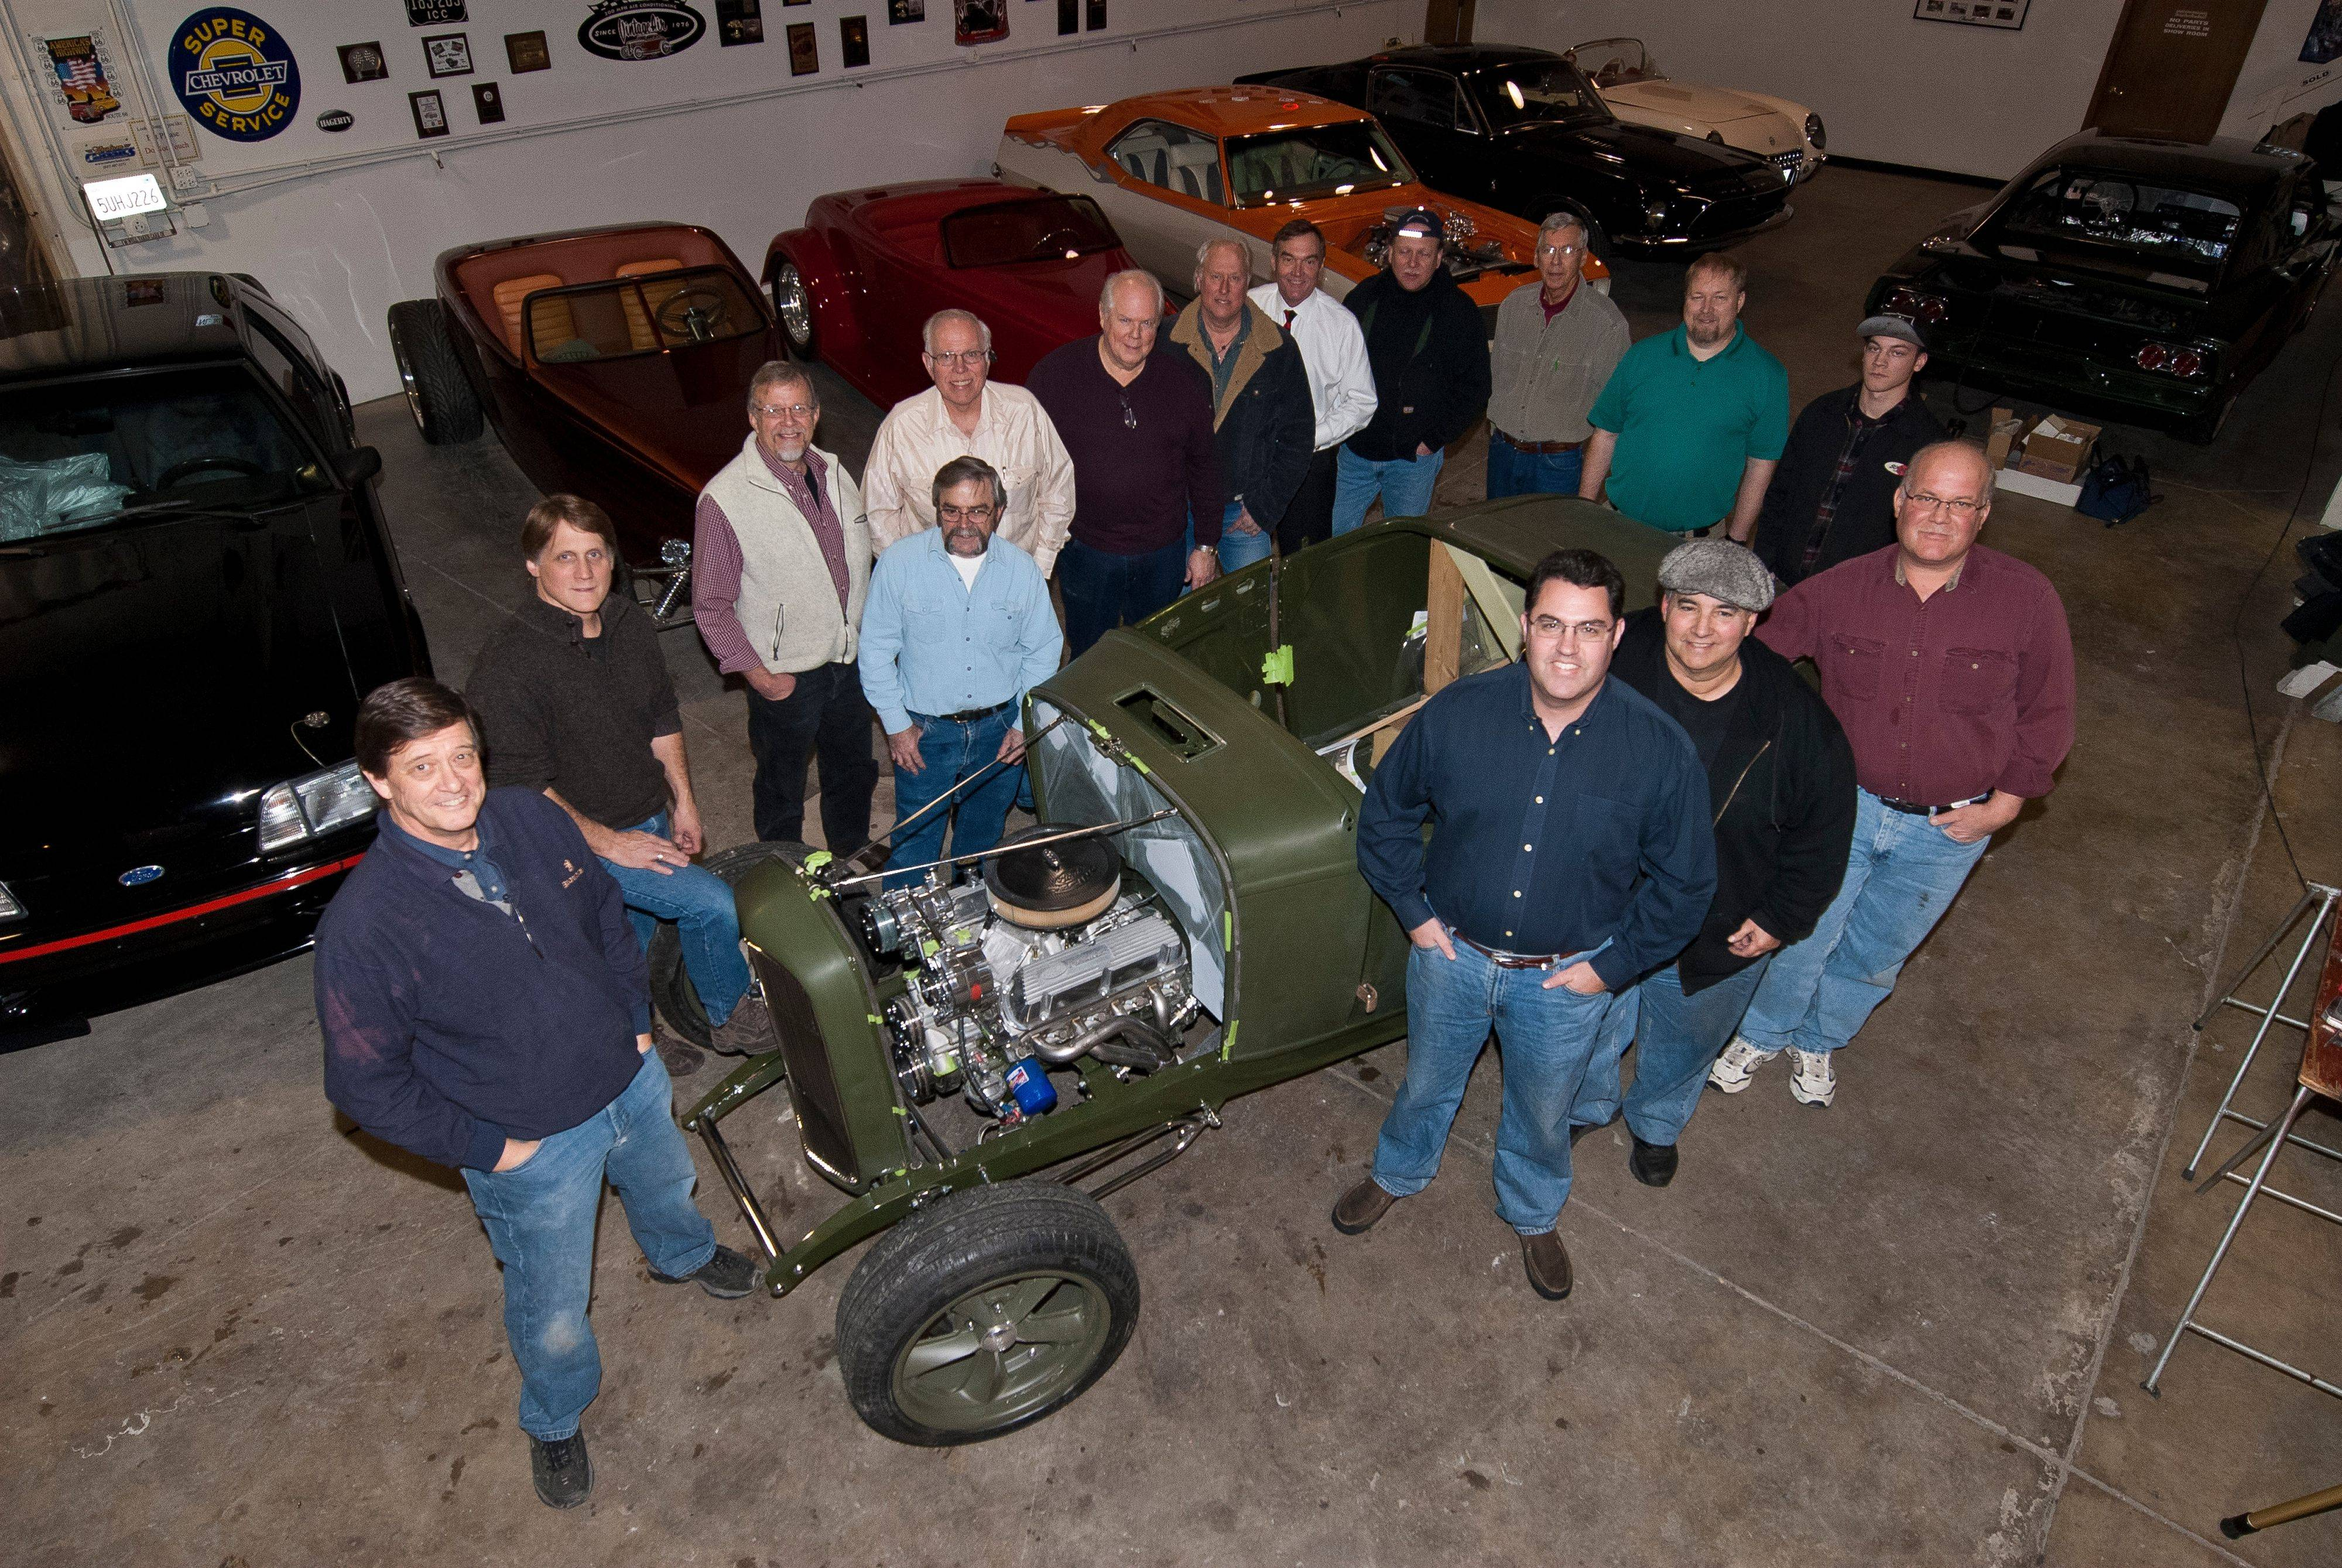 A squadron of volunteers are building a car for charity at Custom Classics Restorations in at Island Lake.